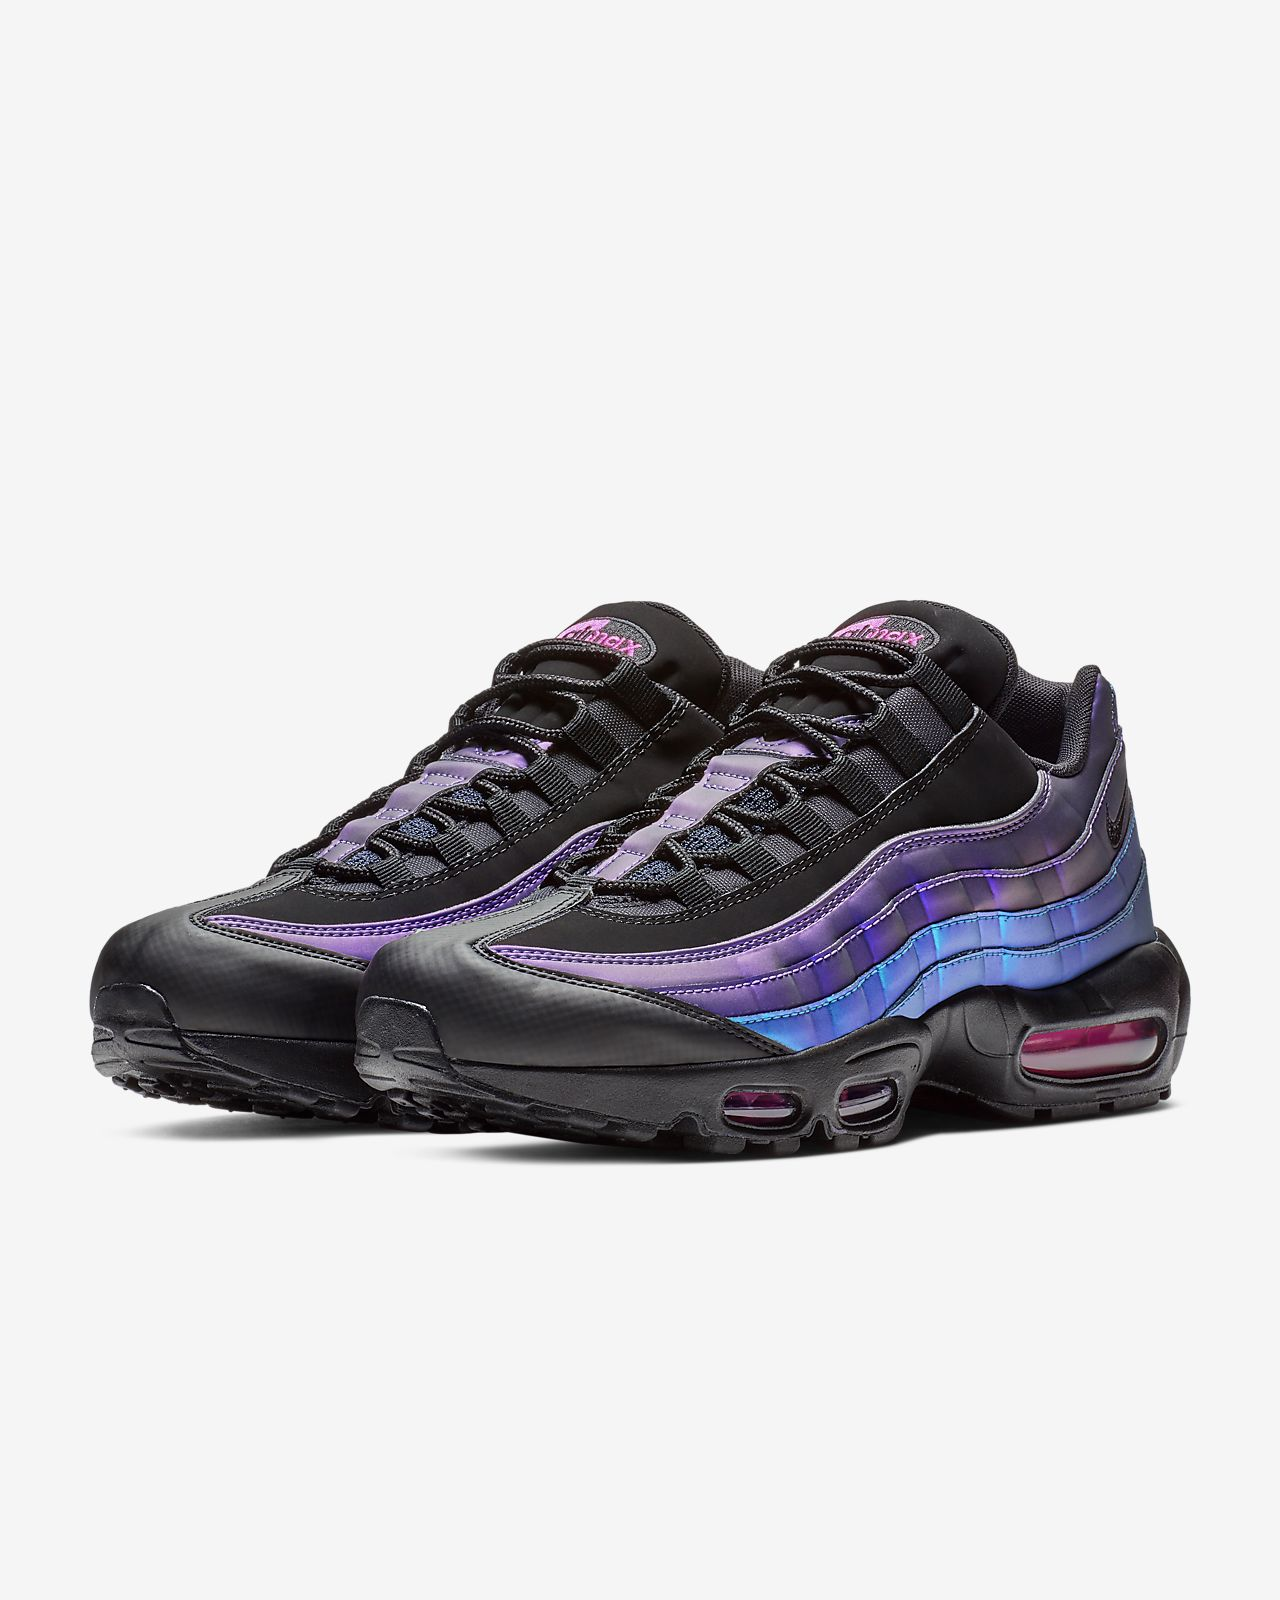 new style af2d1 6a5c0 ... Chaussure Nike Air Max 95 Premium pour Homme